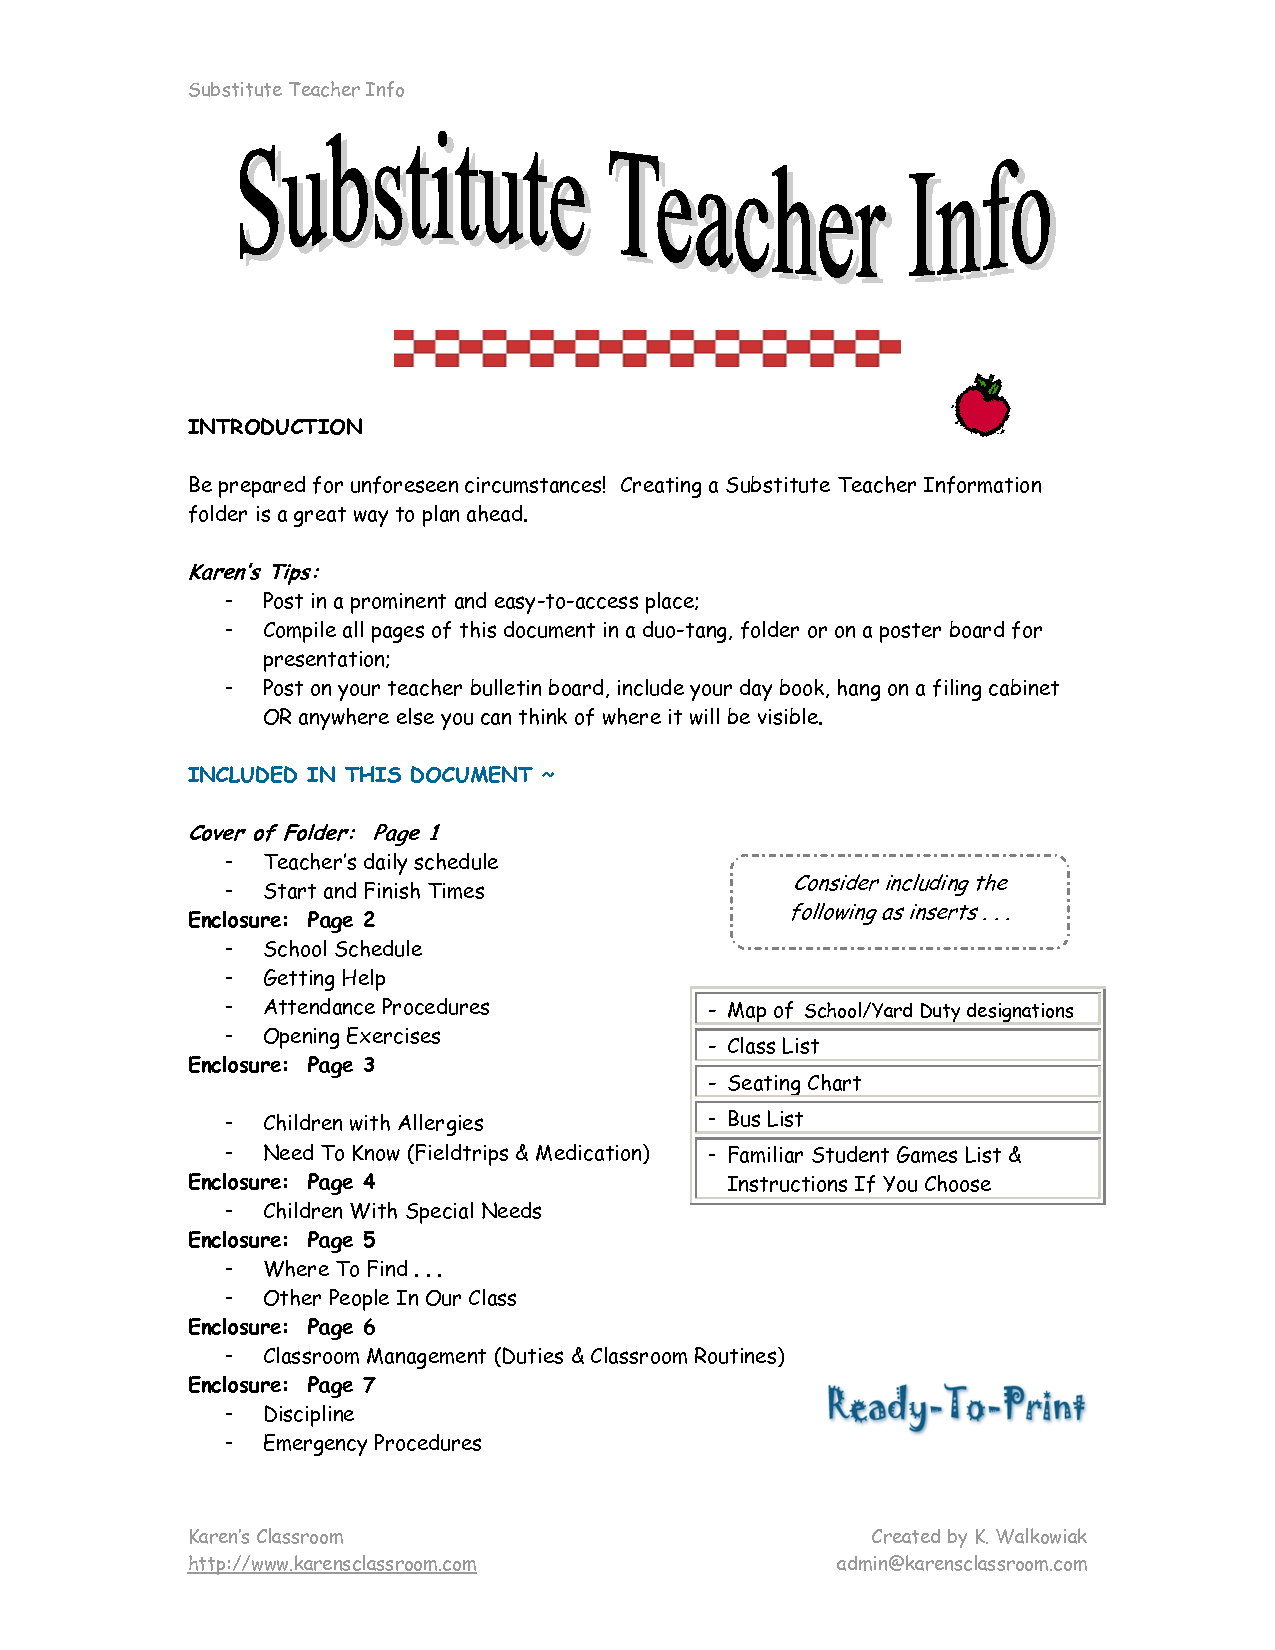 How To Write A Resume For Teacher Job Teaching Job Resume Cover Letter Our Resume Builder